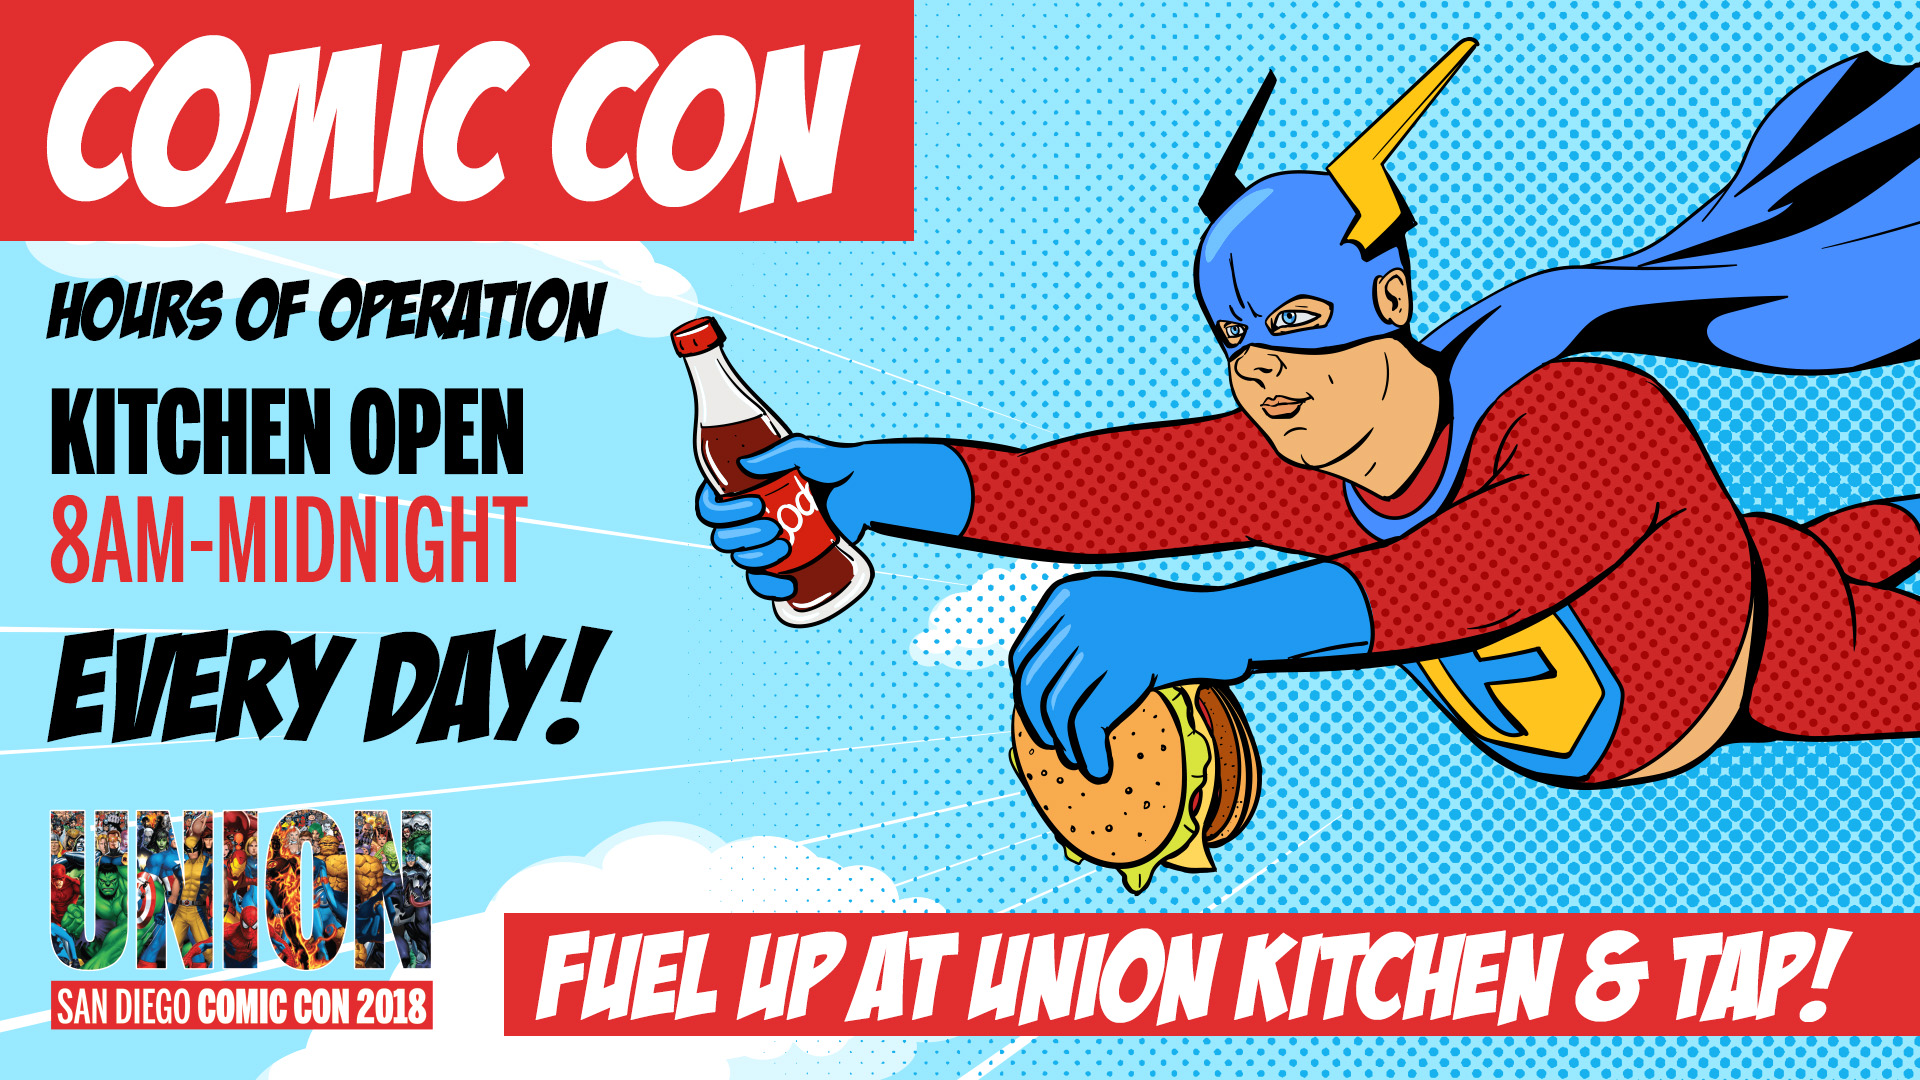 downtown san diego gaslamp quarter comic-con union kitchen and tap